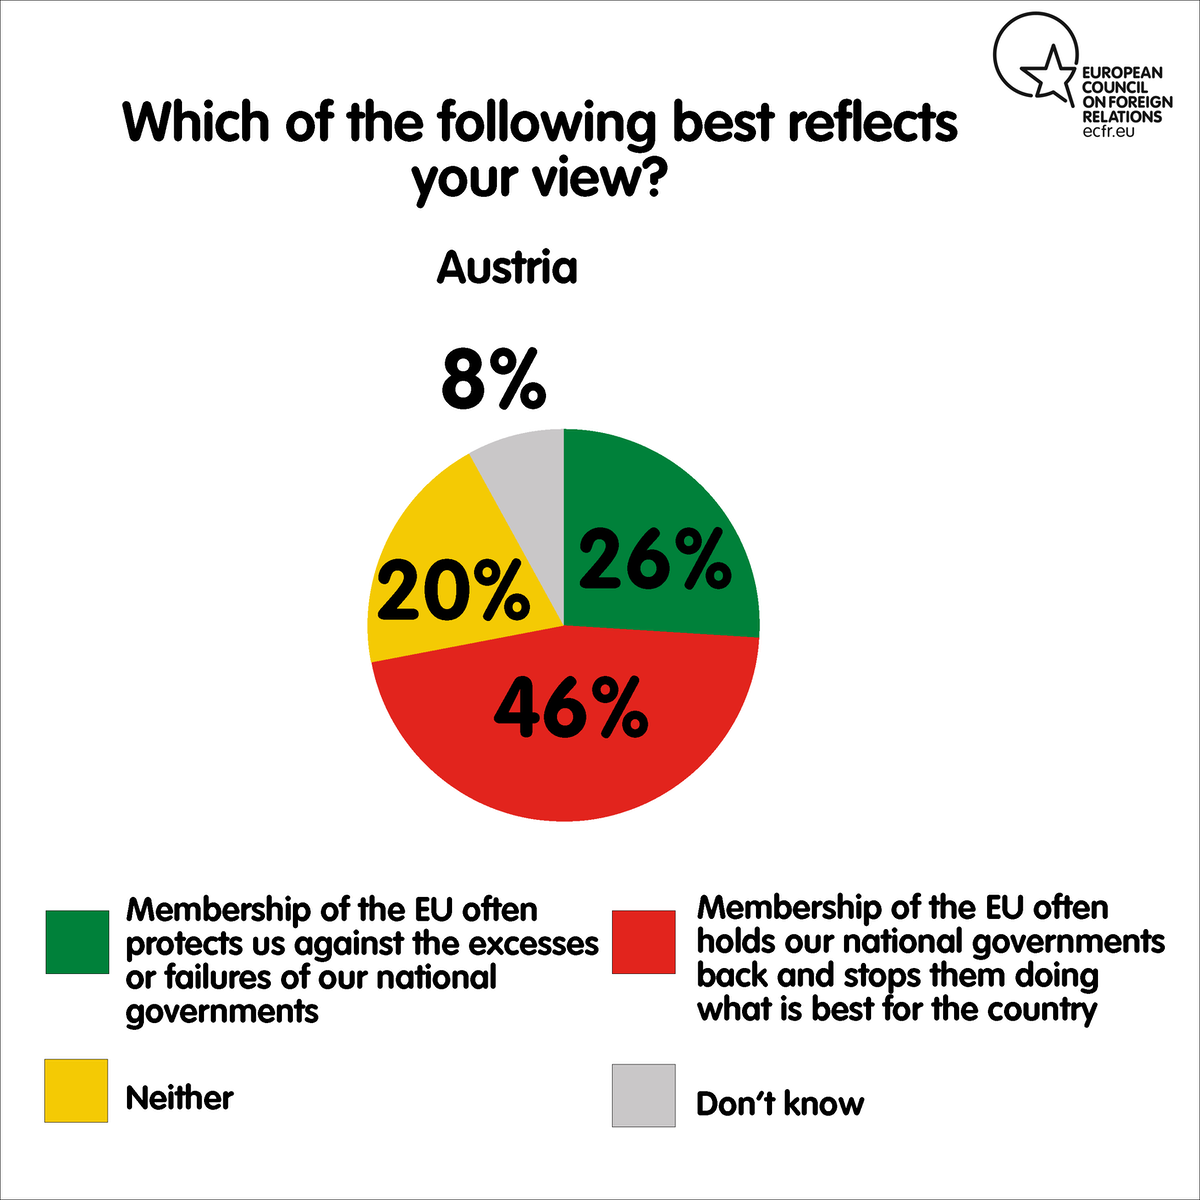 Which of the following best reflects your view?